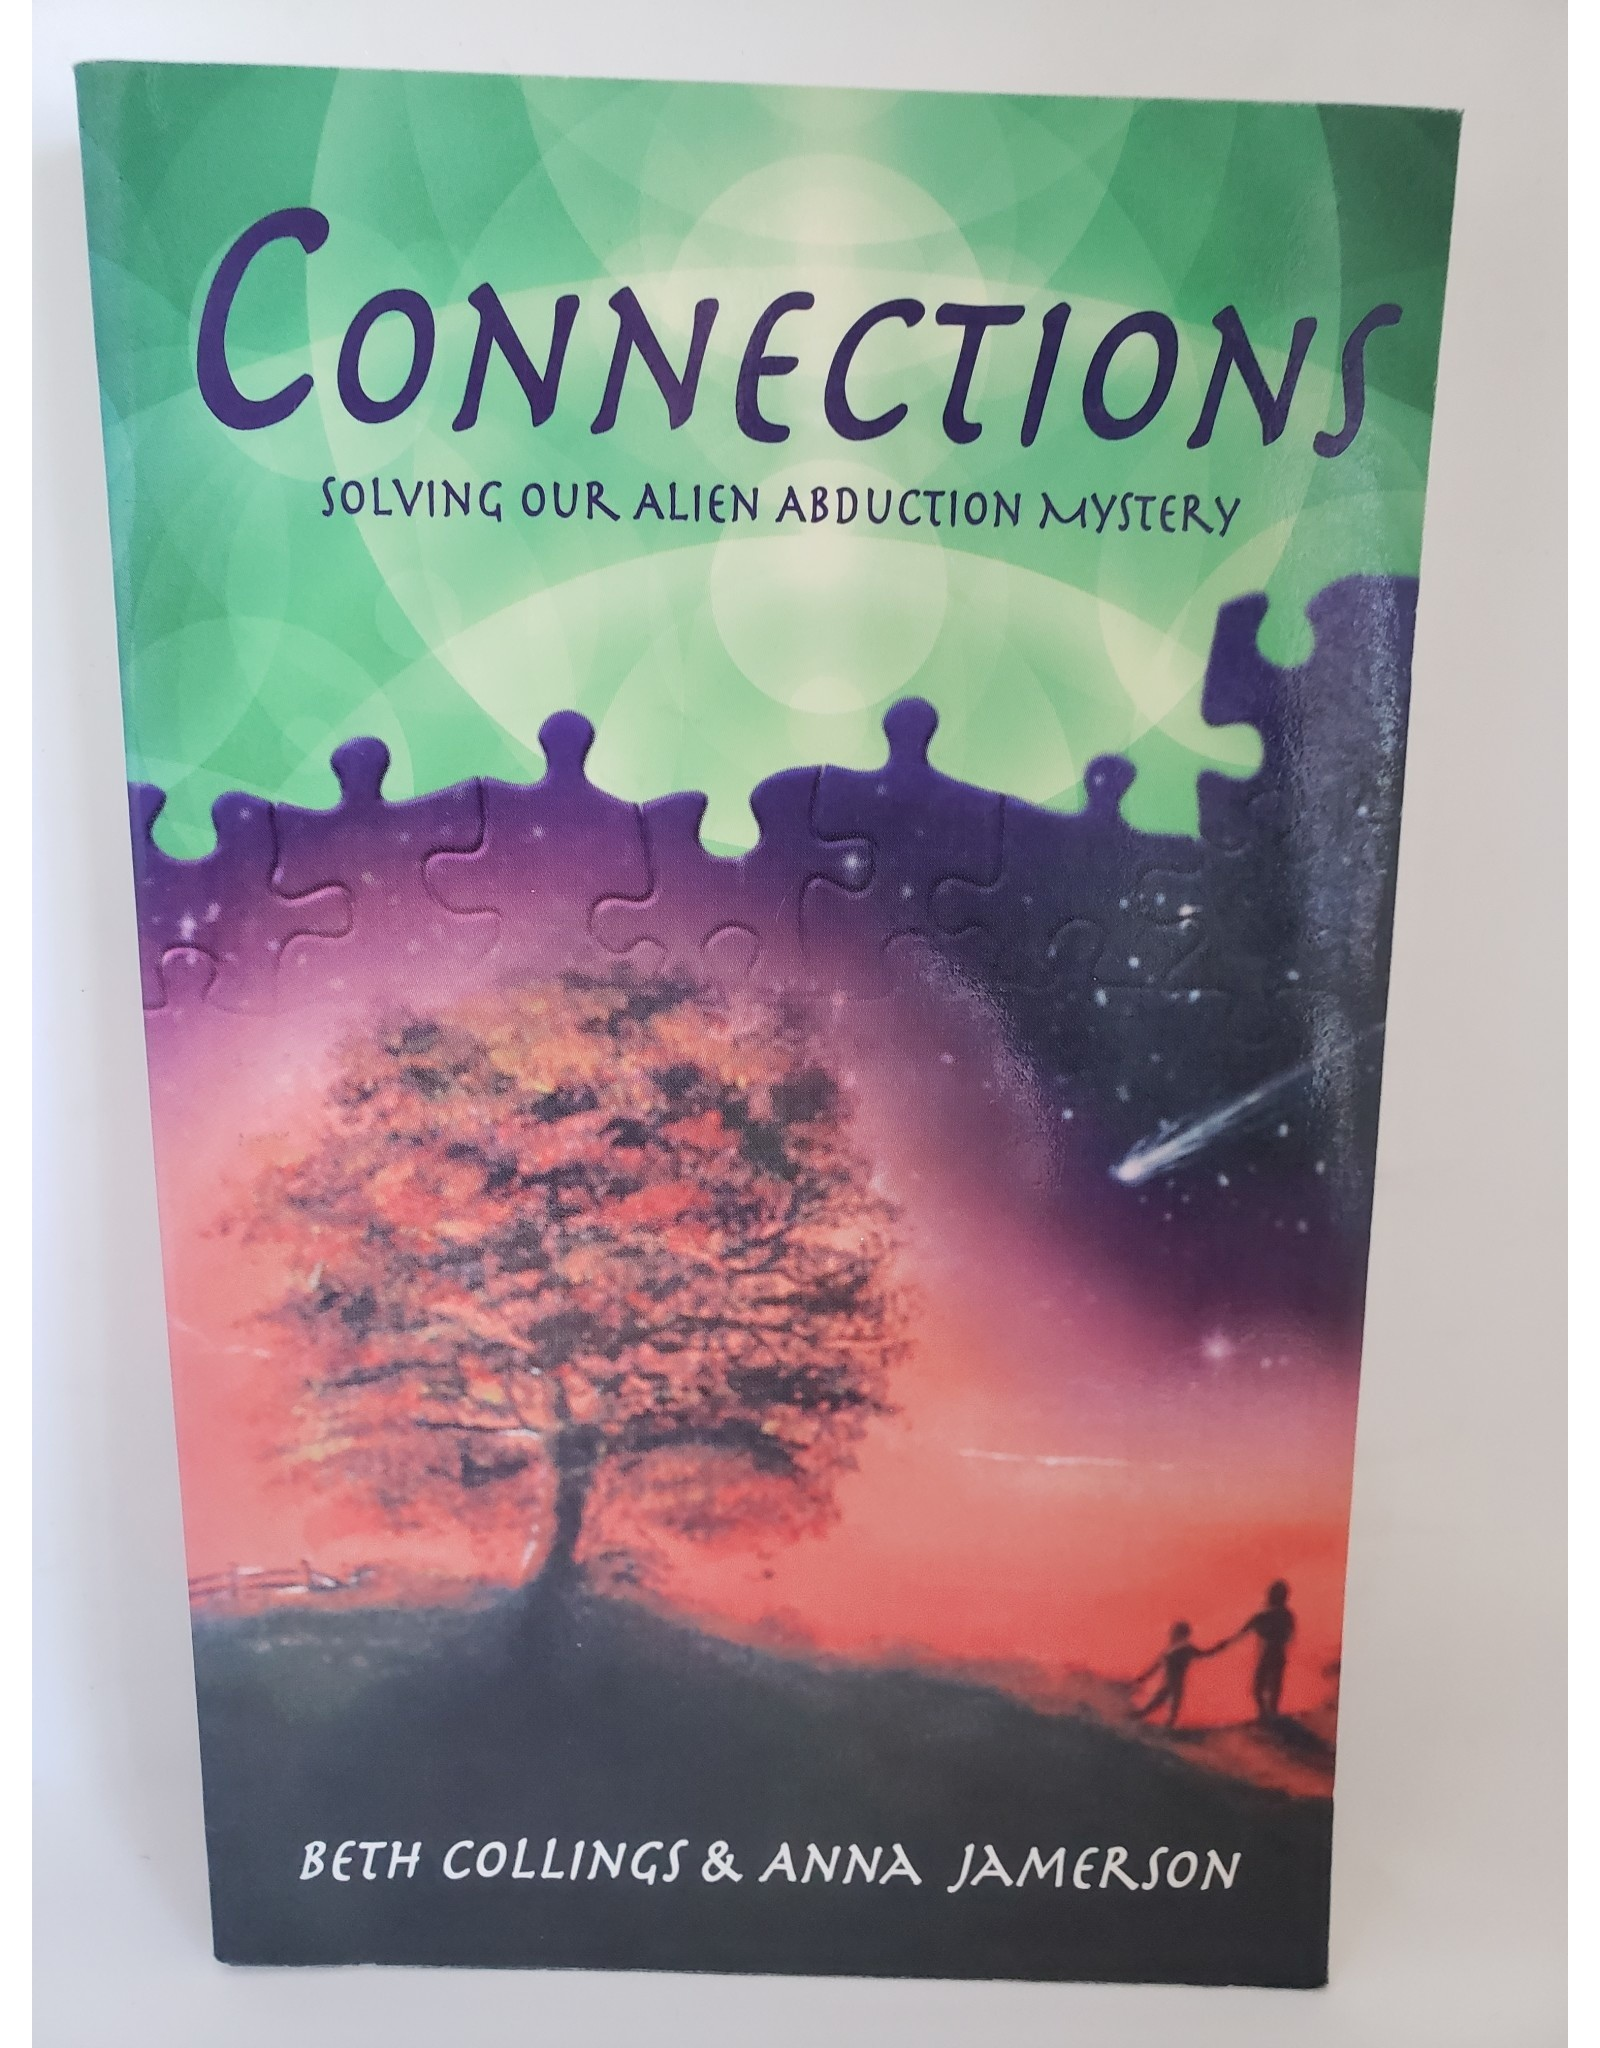 Connections by Beth Collings and Anna Jamerson